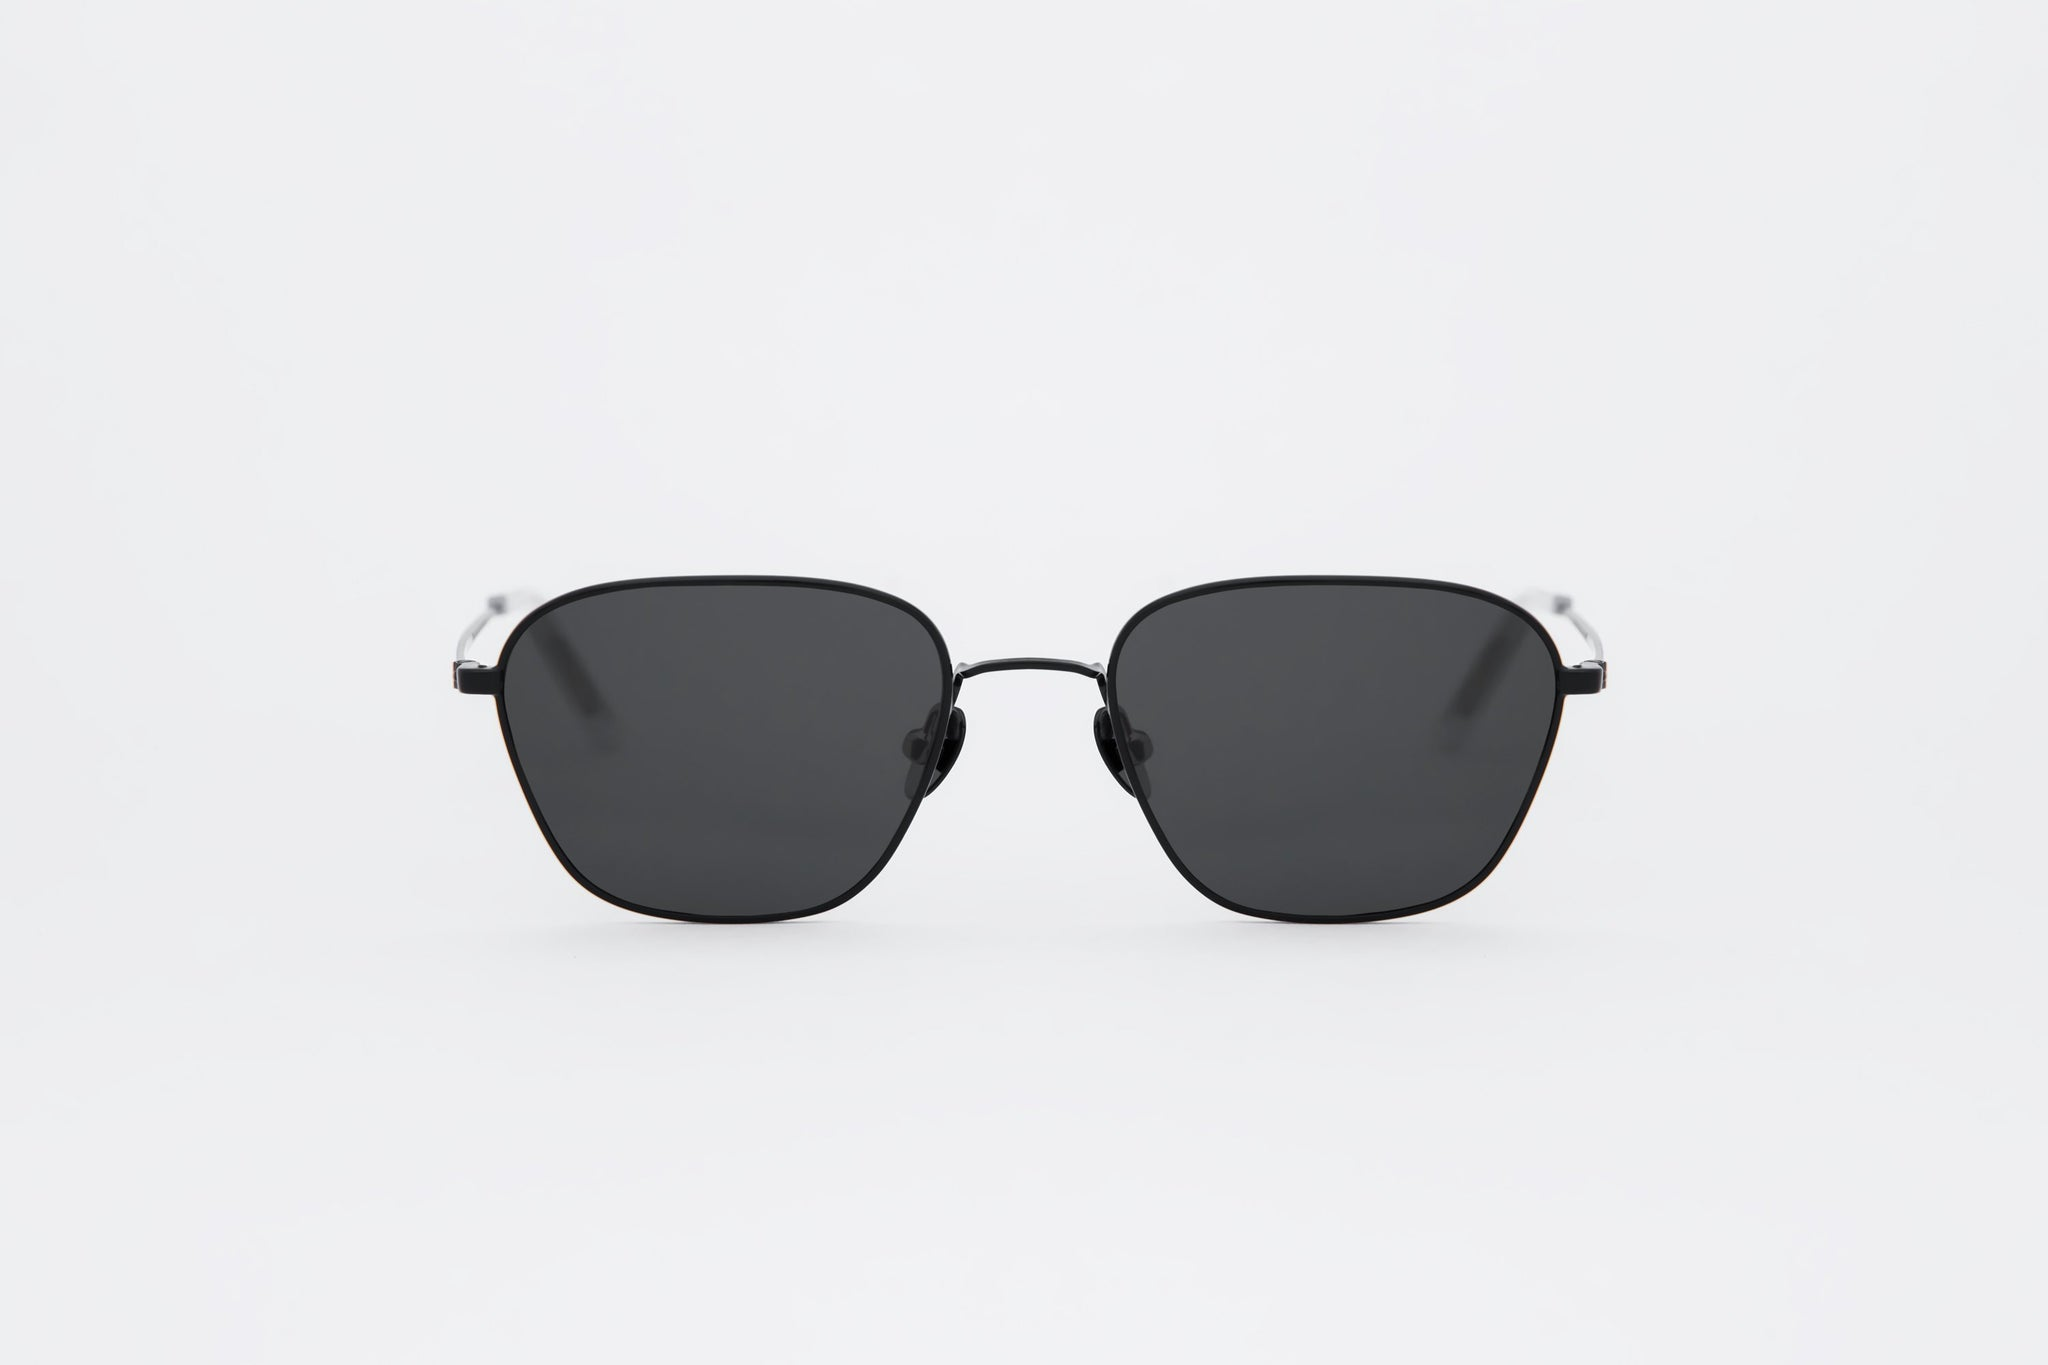 monokel eyewear sunglasses otis black / green solid lens